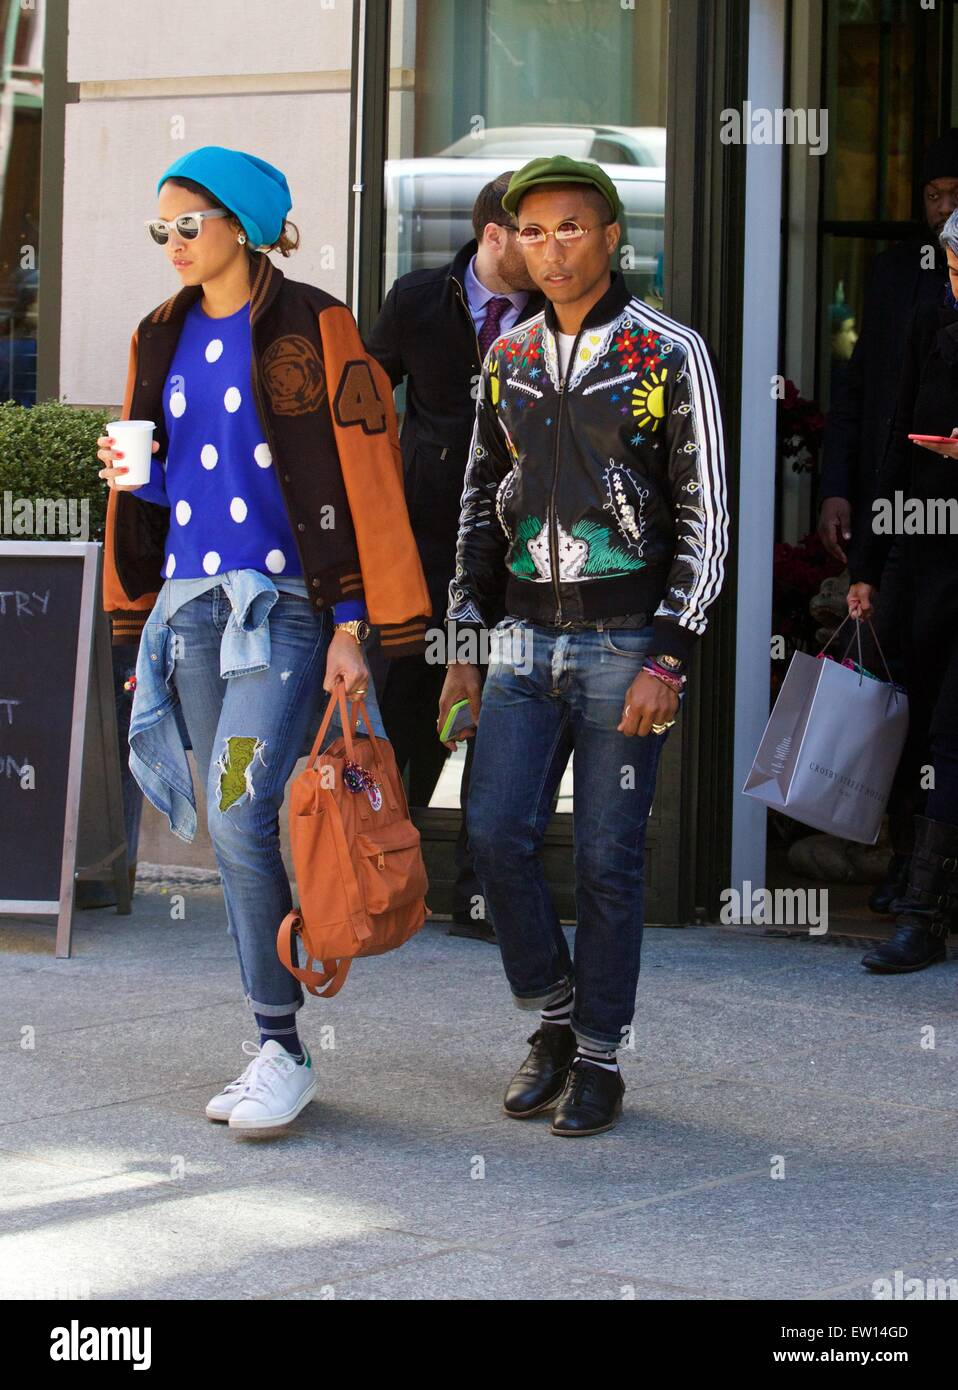 5a828a95 Pharrell Williams and Helen Lasichanh out and about in SoHo Featuring: Pharrell  Williams, Helen Lasichanh Where: New York City, New York, United States ...